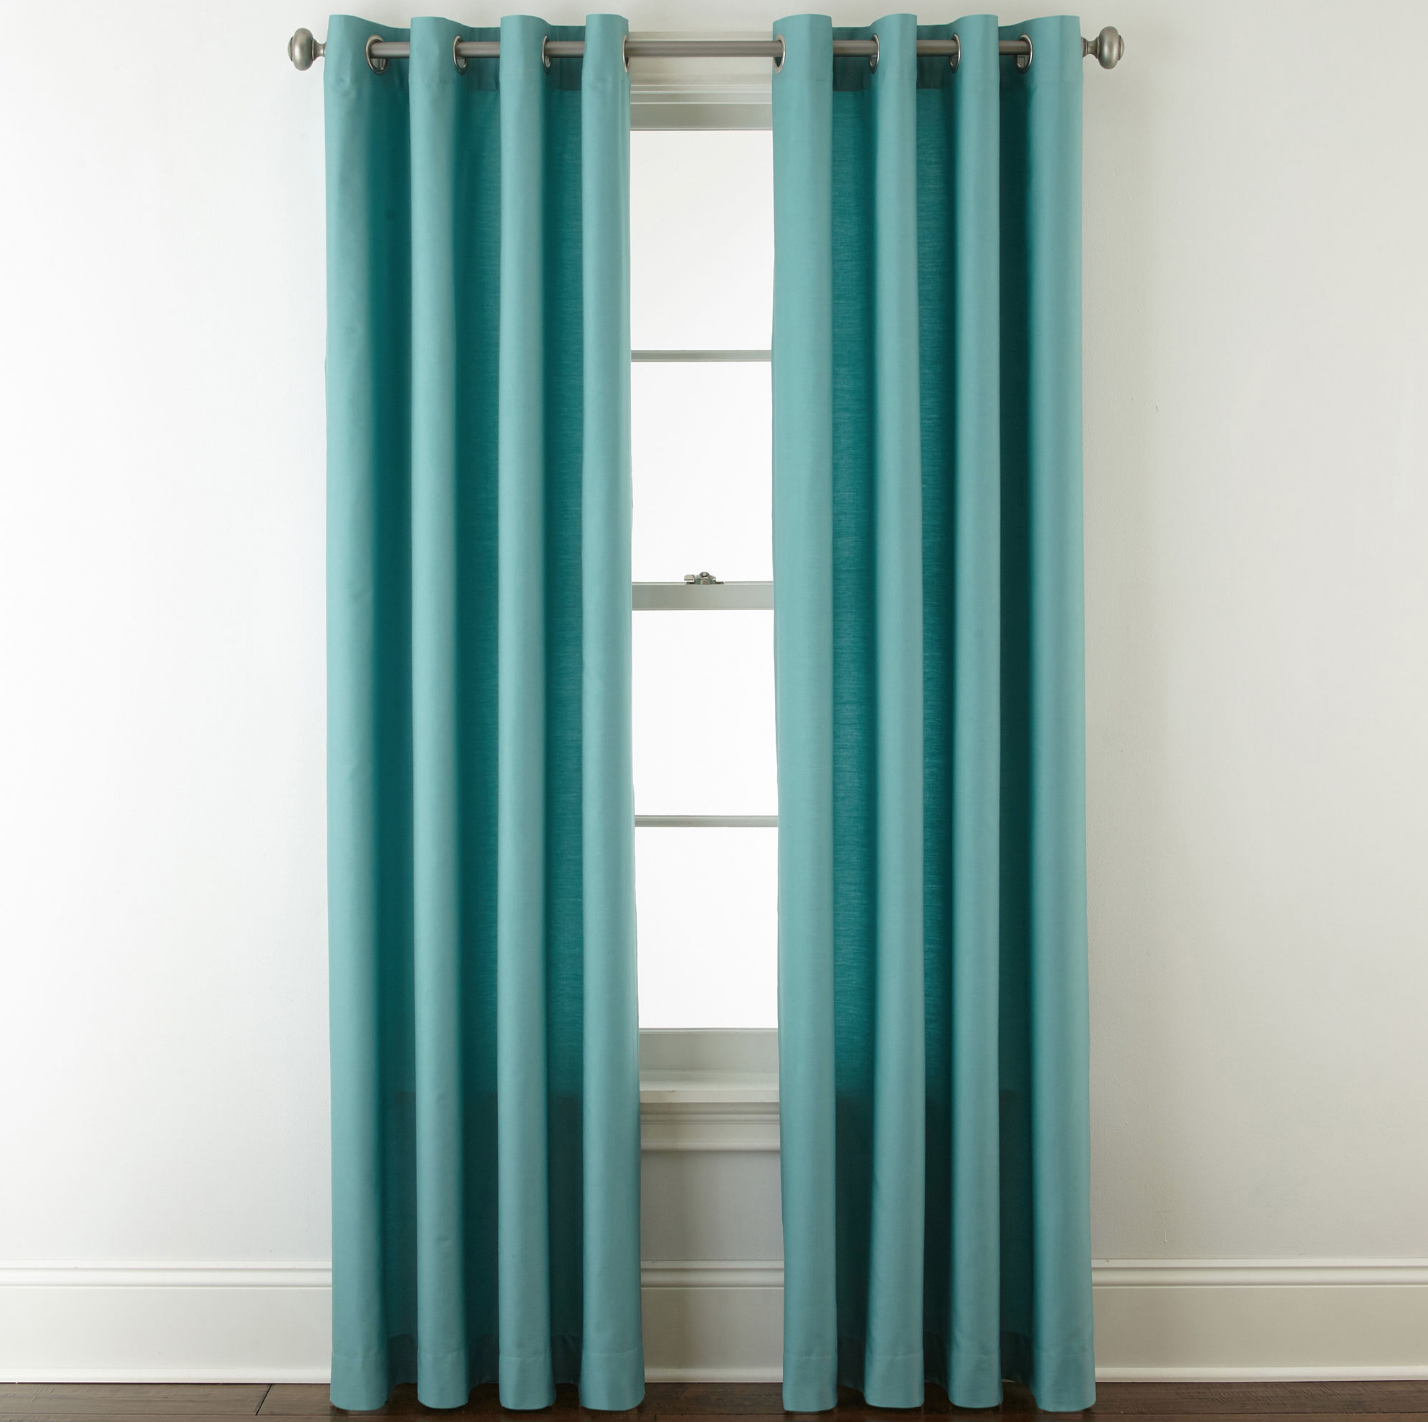 Jcpenney Home Store Locator: $8 Curtain Panels At JCPenney!